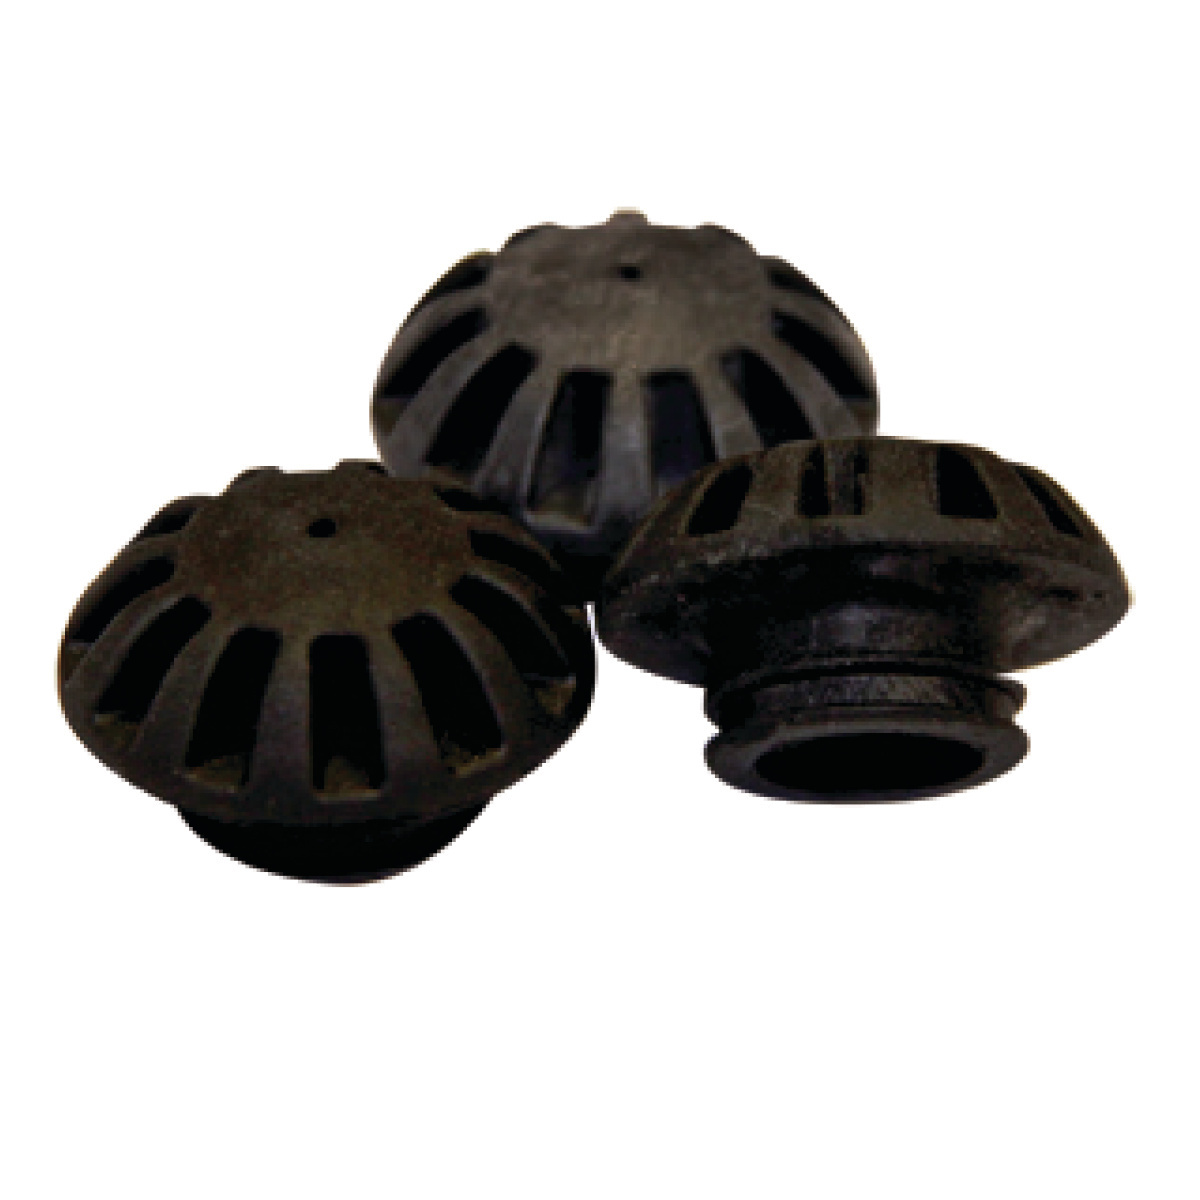 Aqua Guard Vibration Isolators